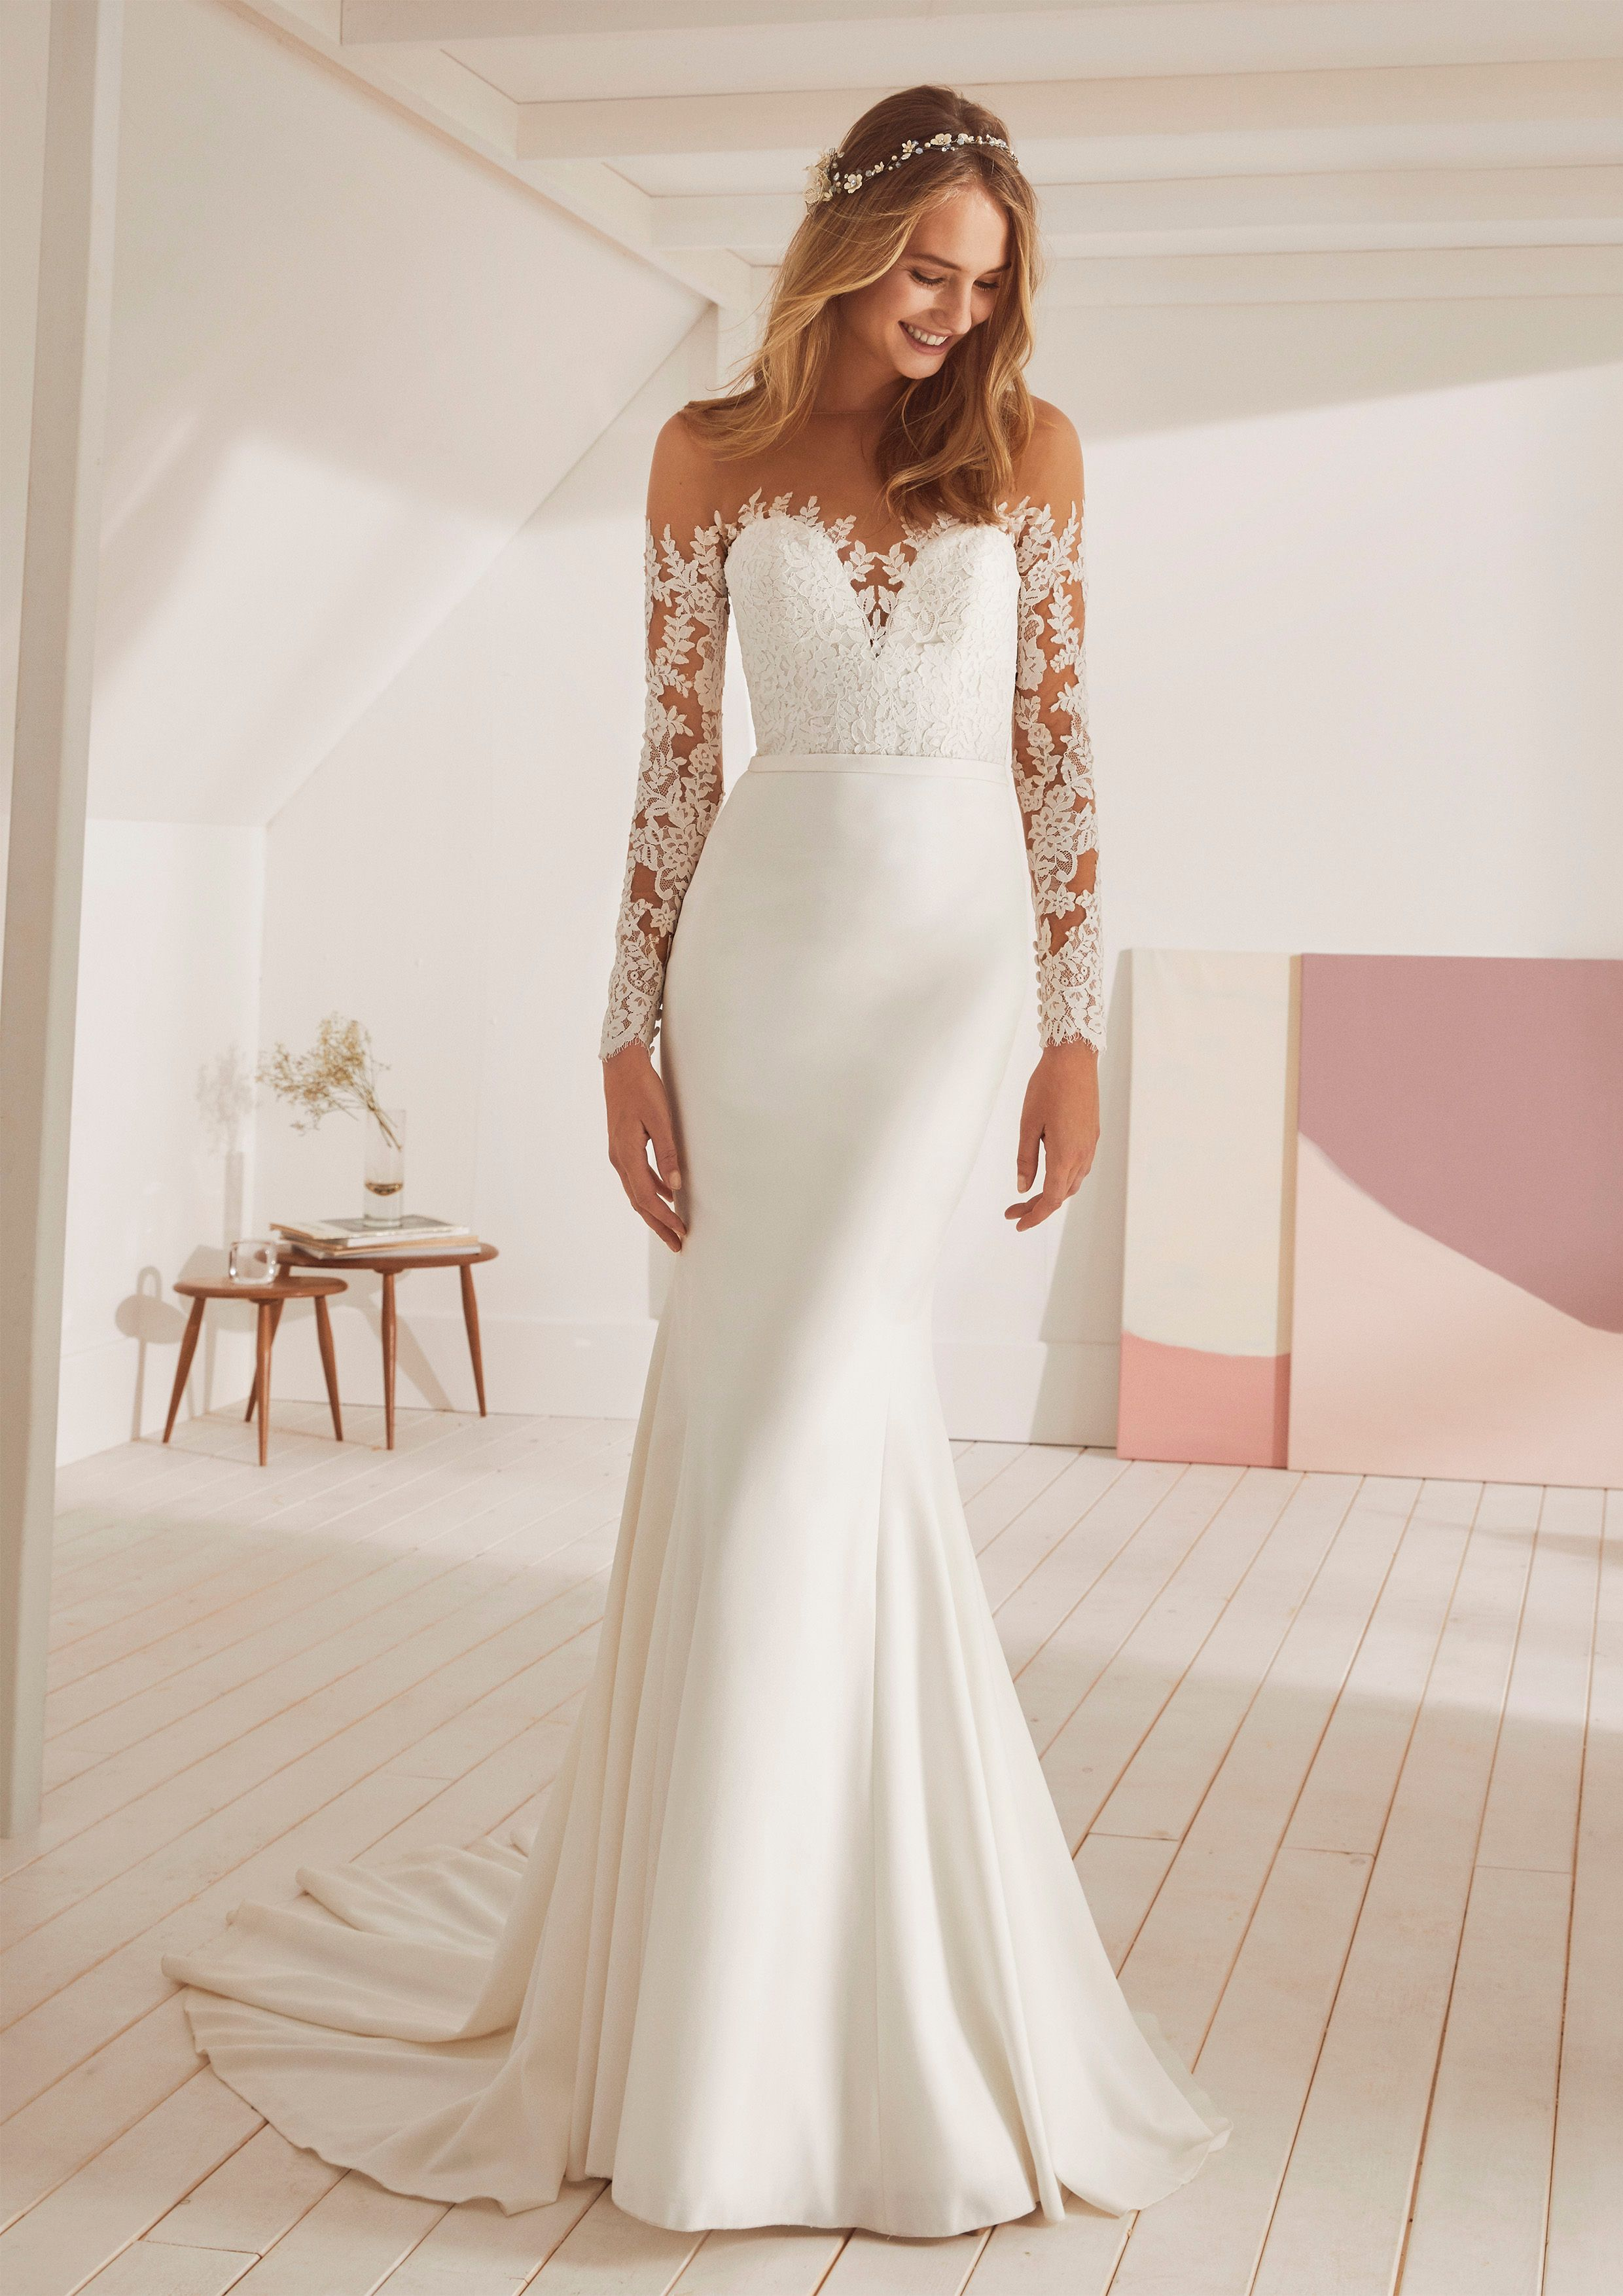 Off The Shoulder Illusion Lace Long Sleeves Fit And Flare Beauty From Pronovias Weddingdress Spring Wedding Dress Wedding Dresses Wedding Dress Long Sleeve [ 3508 x 2480 Pixel ]